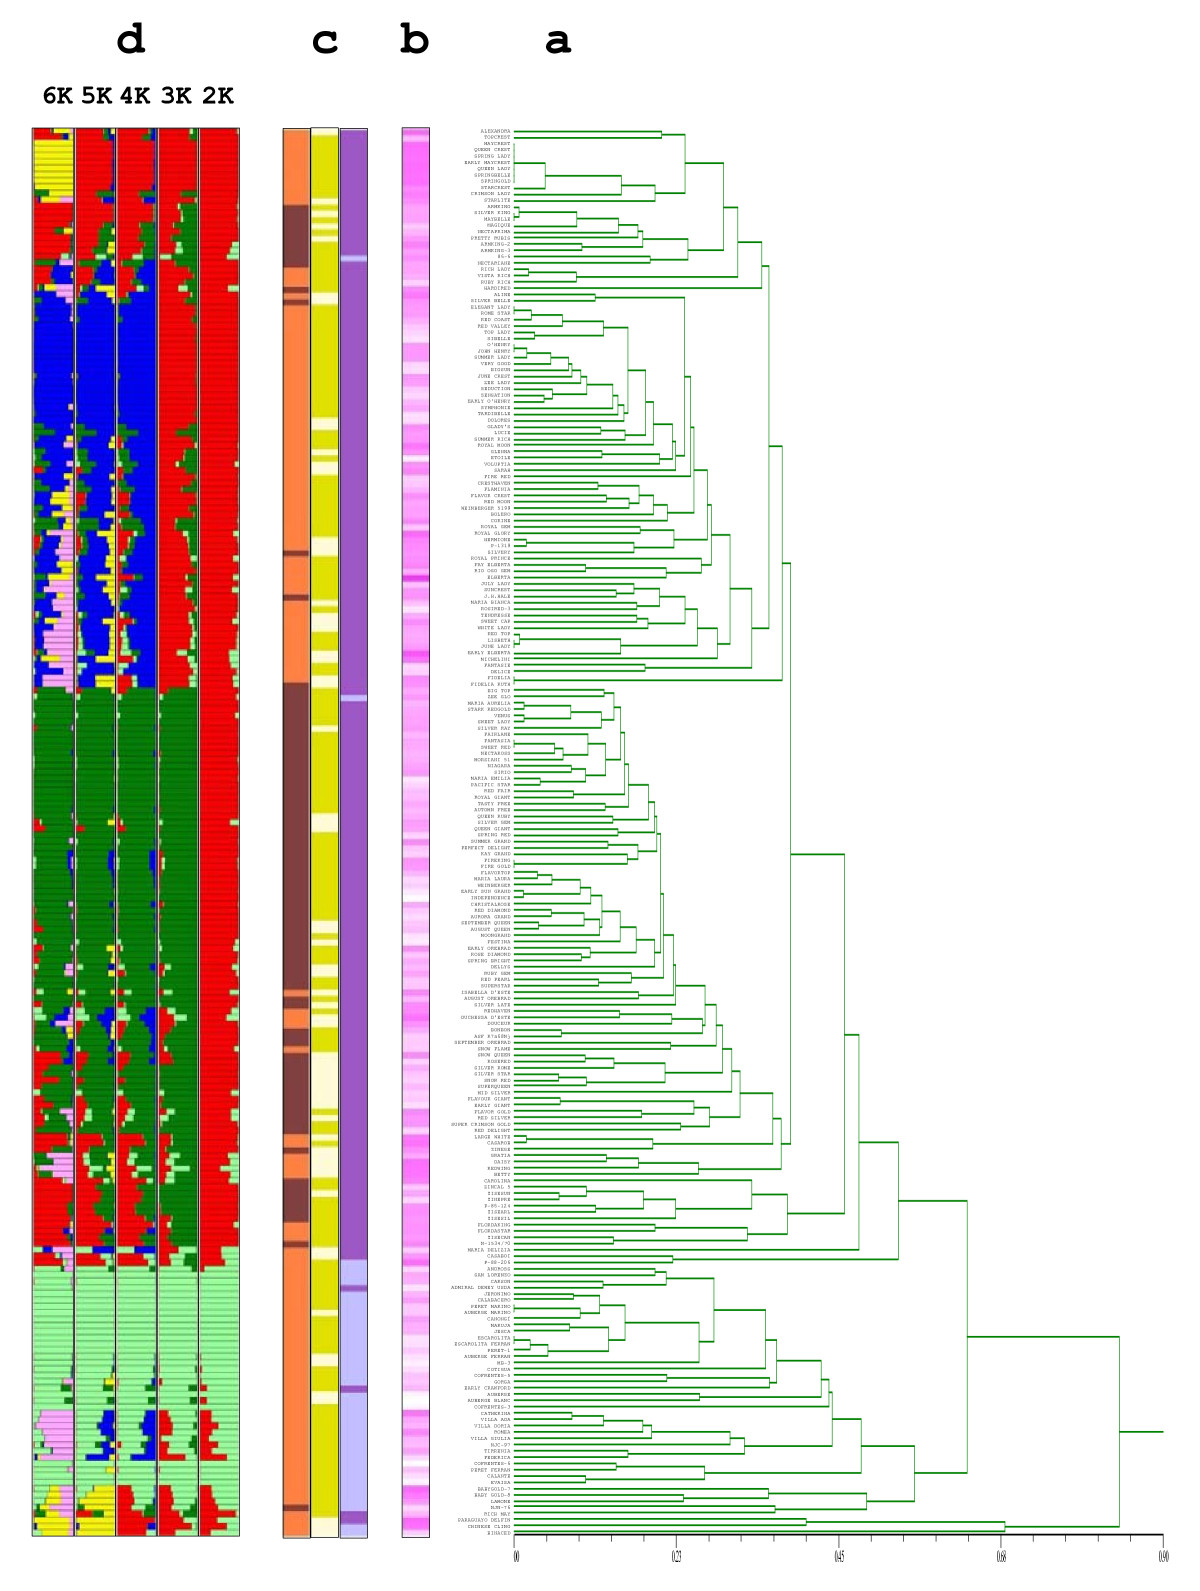 http://static-content.springer.com/image/art%3A10.1186%2F1471-2156-11-69/MediaObjects/12863_2010_Article_816_Fig1_HTML.jpg